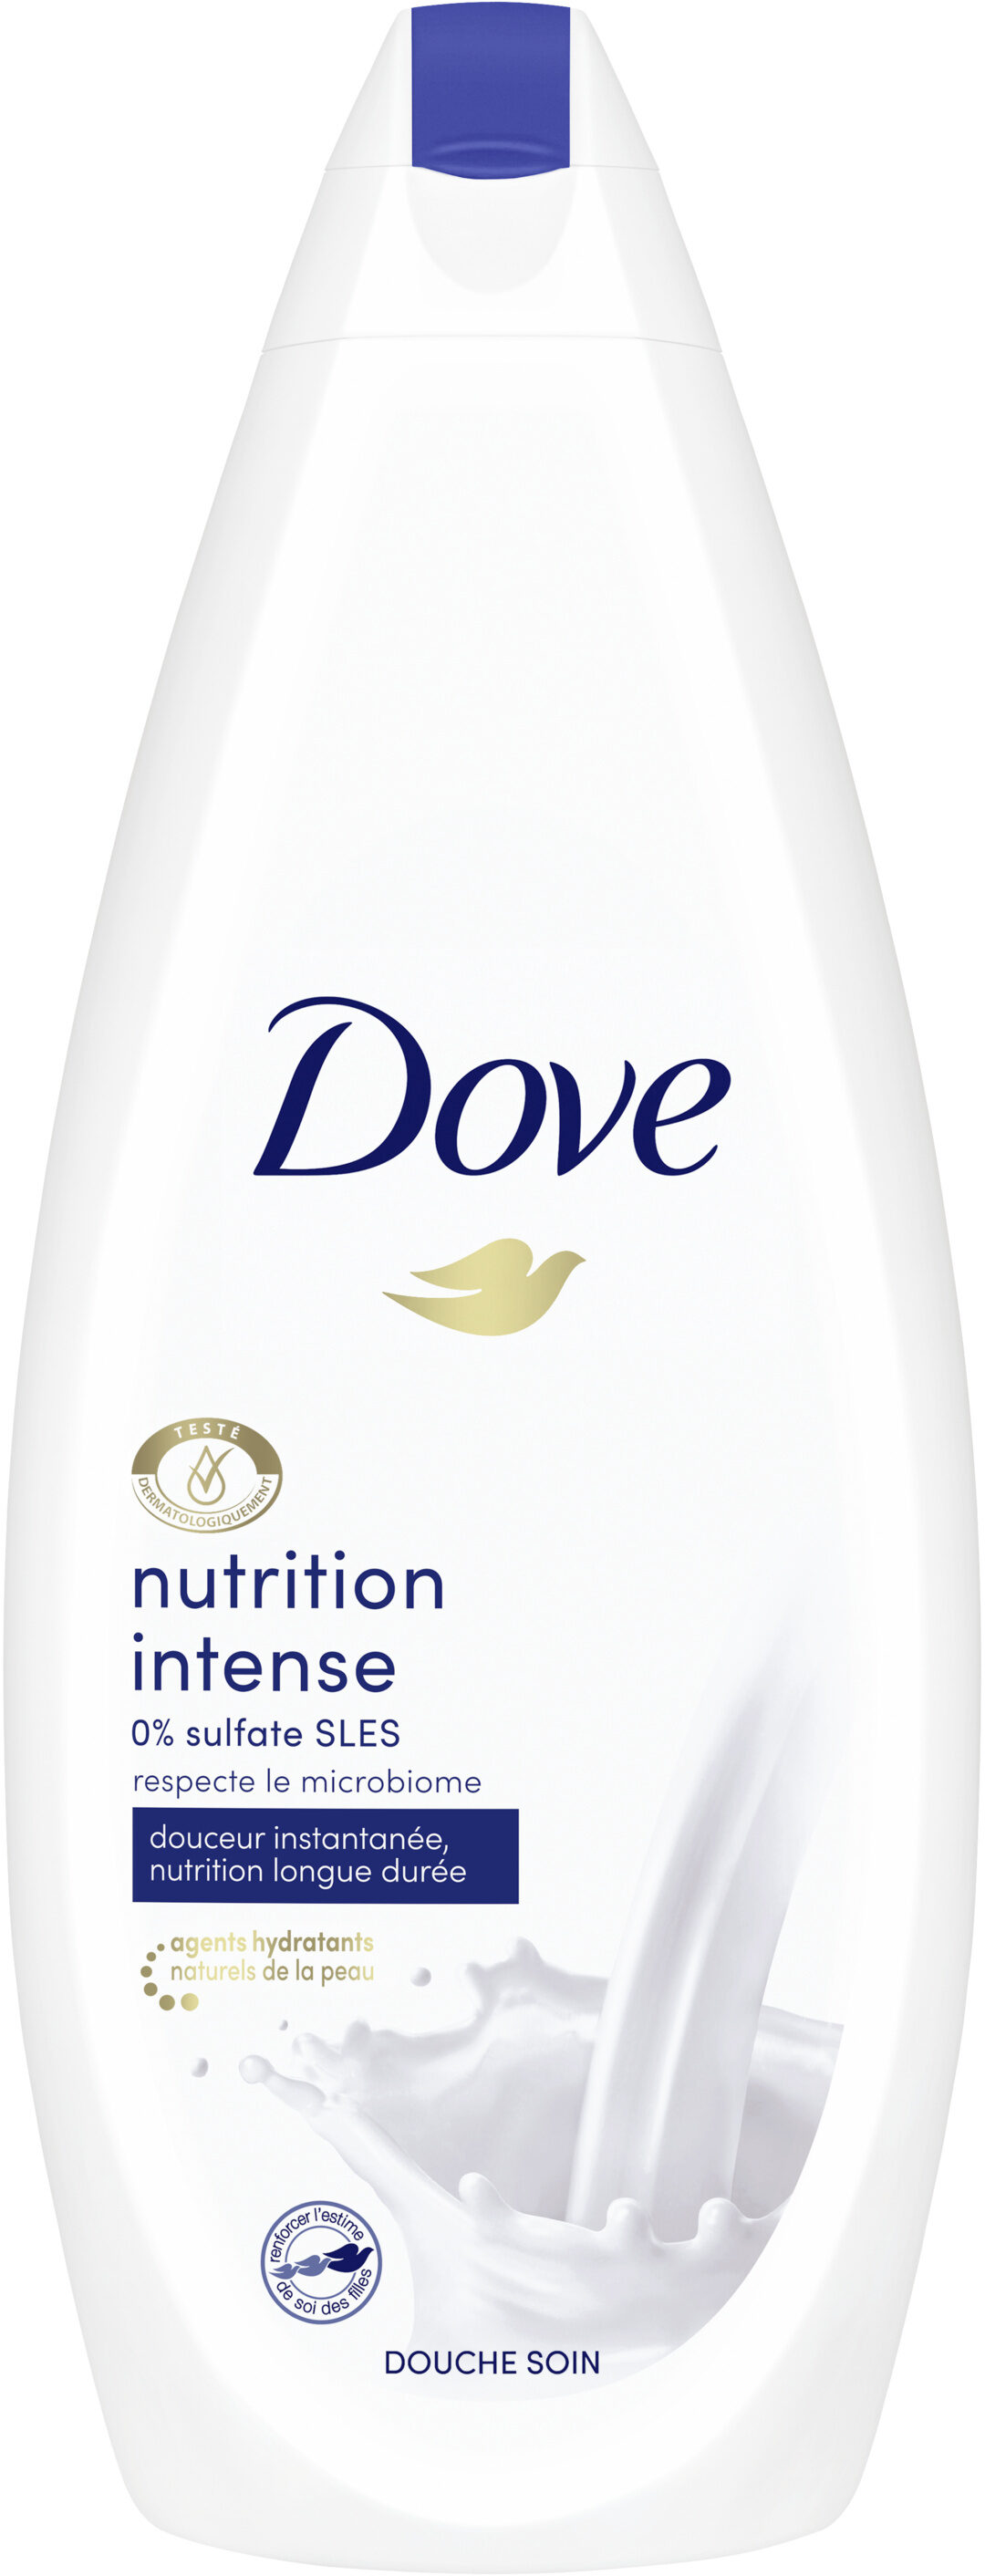 Dove Gel Douche Nutrition Intense - Product - fr